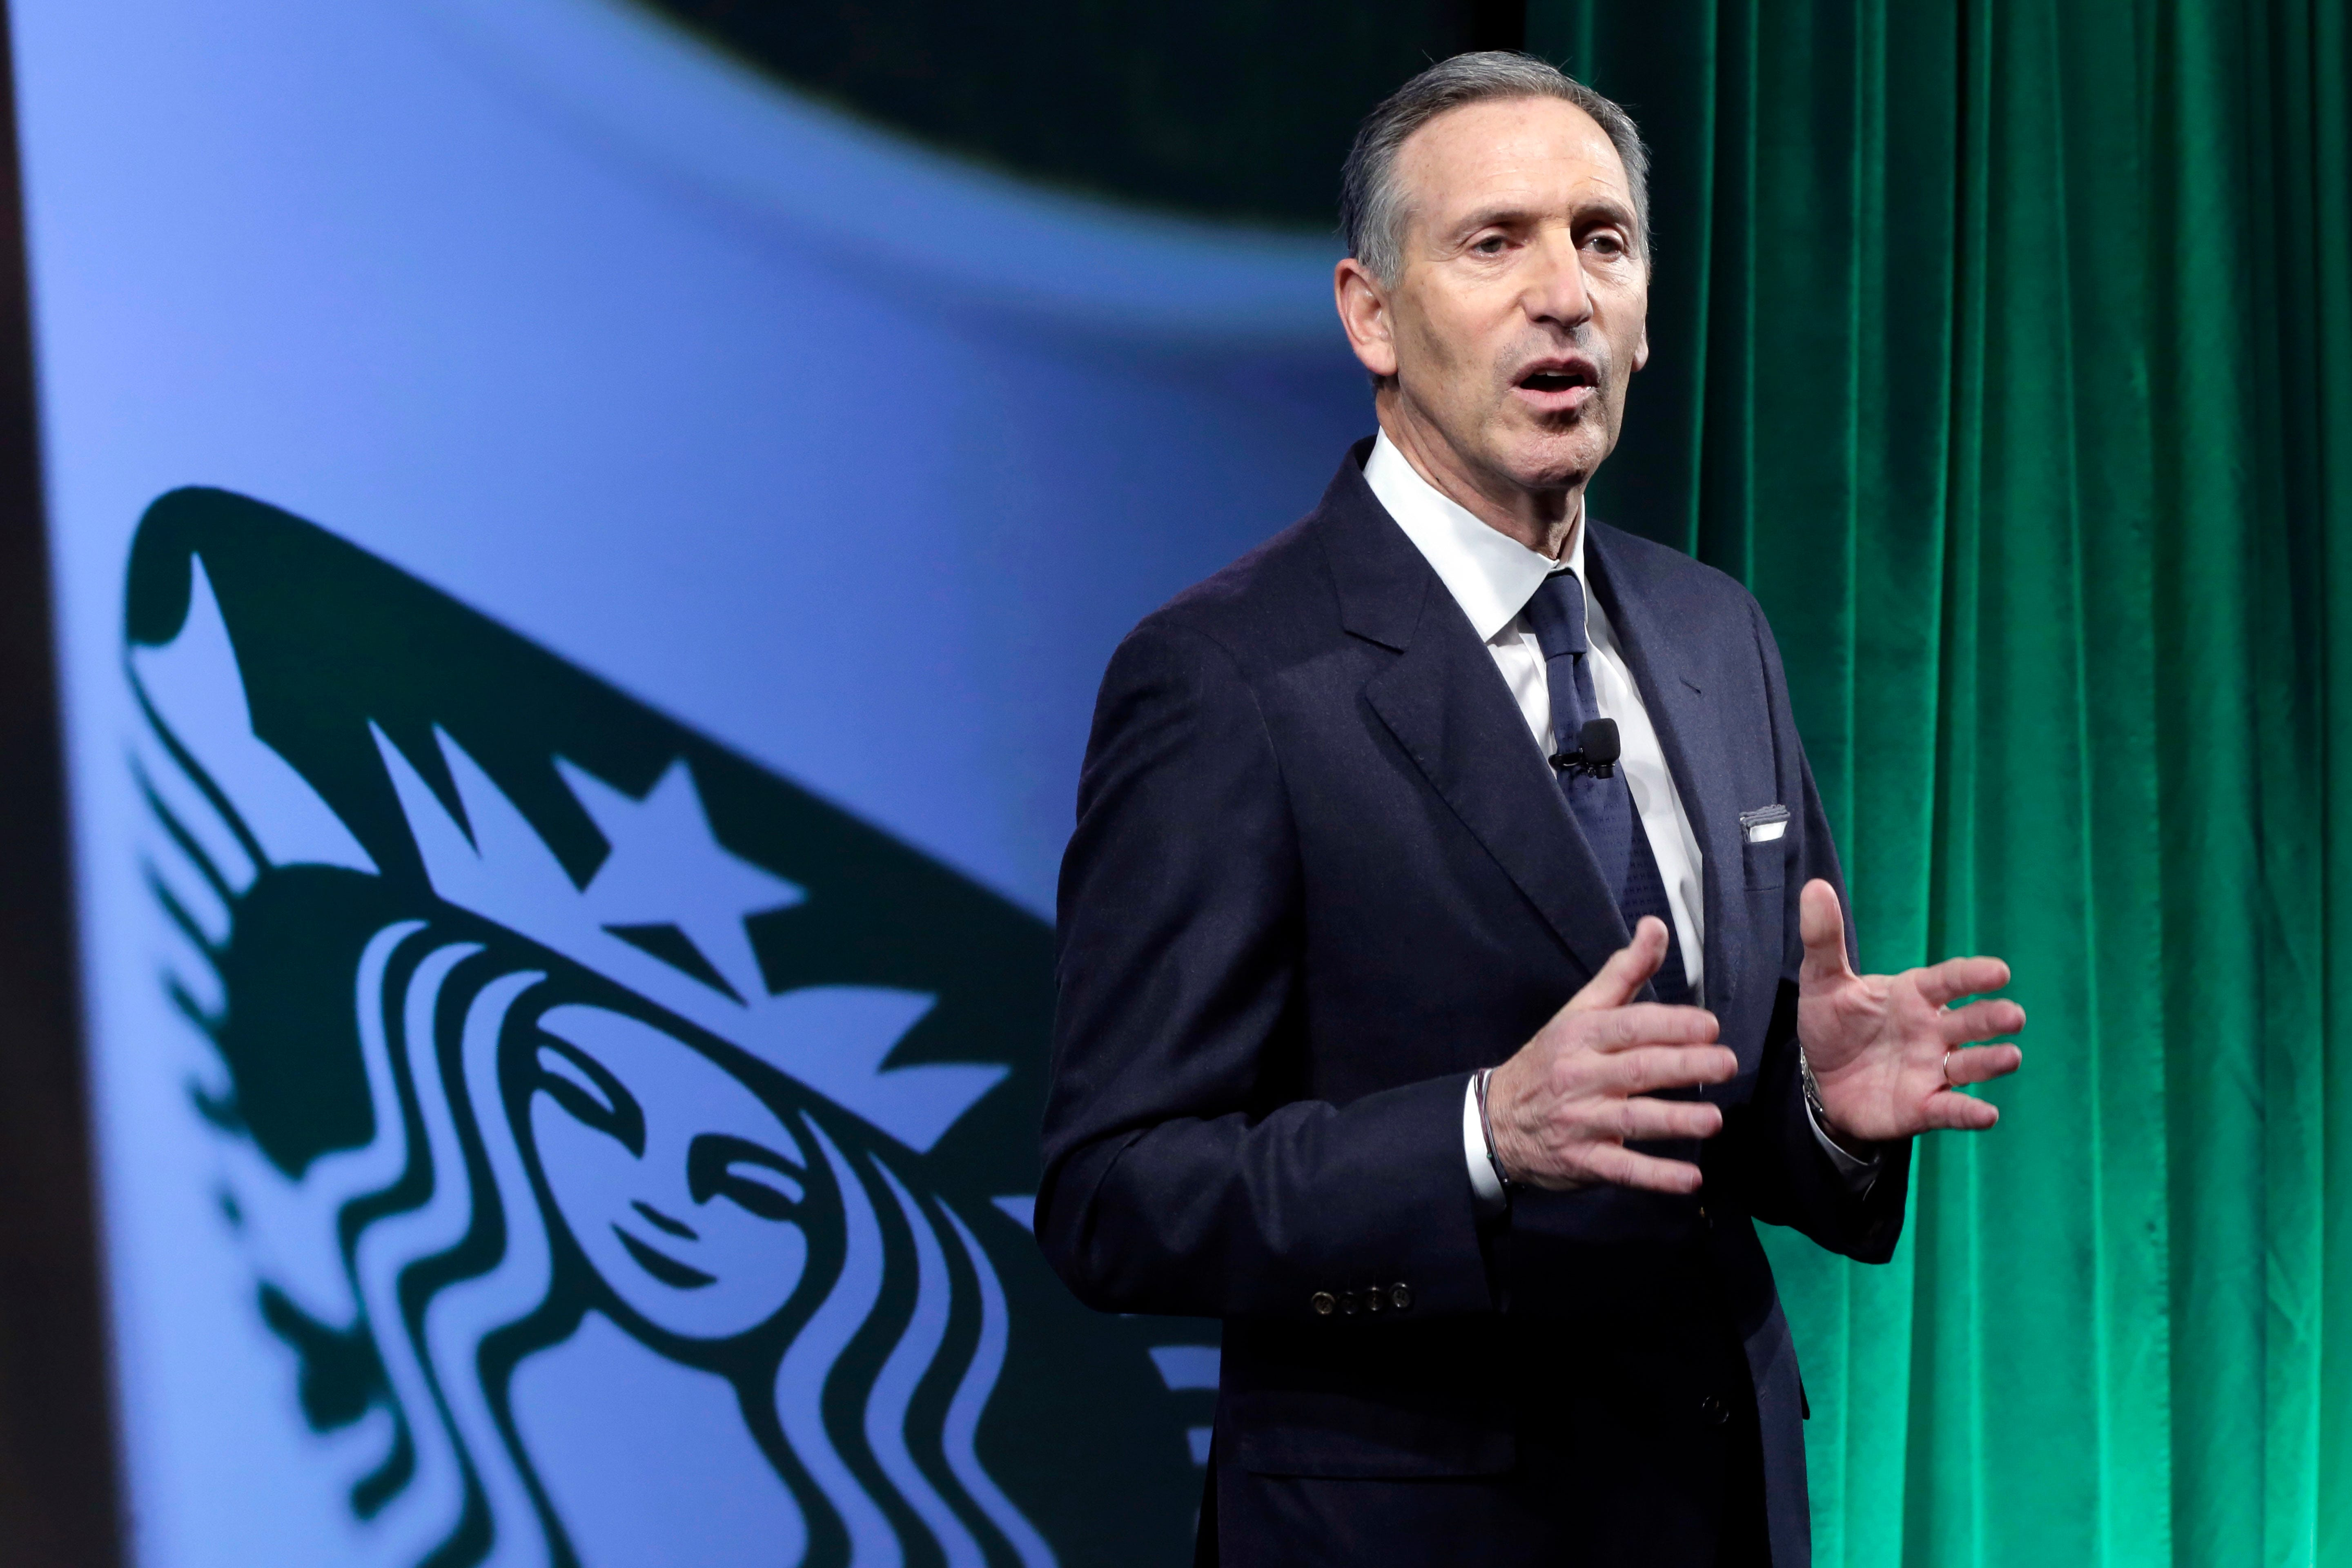 Starbucks are going to hire 10,000 refugees over the next five years